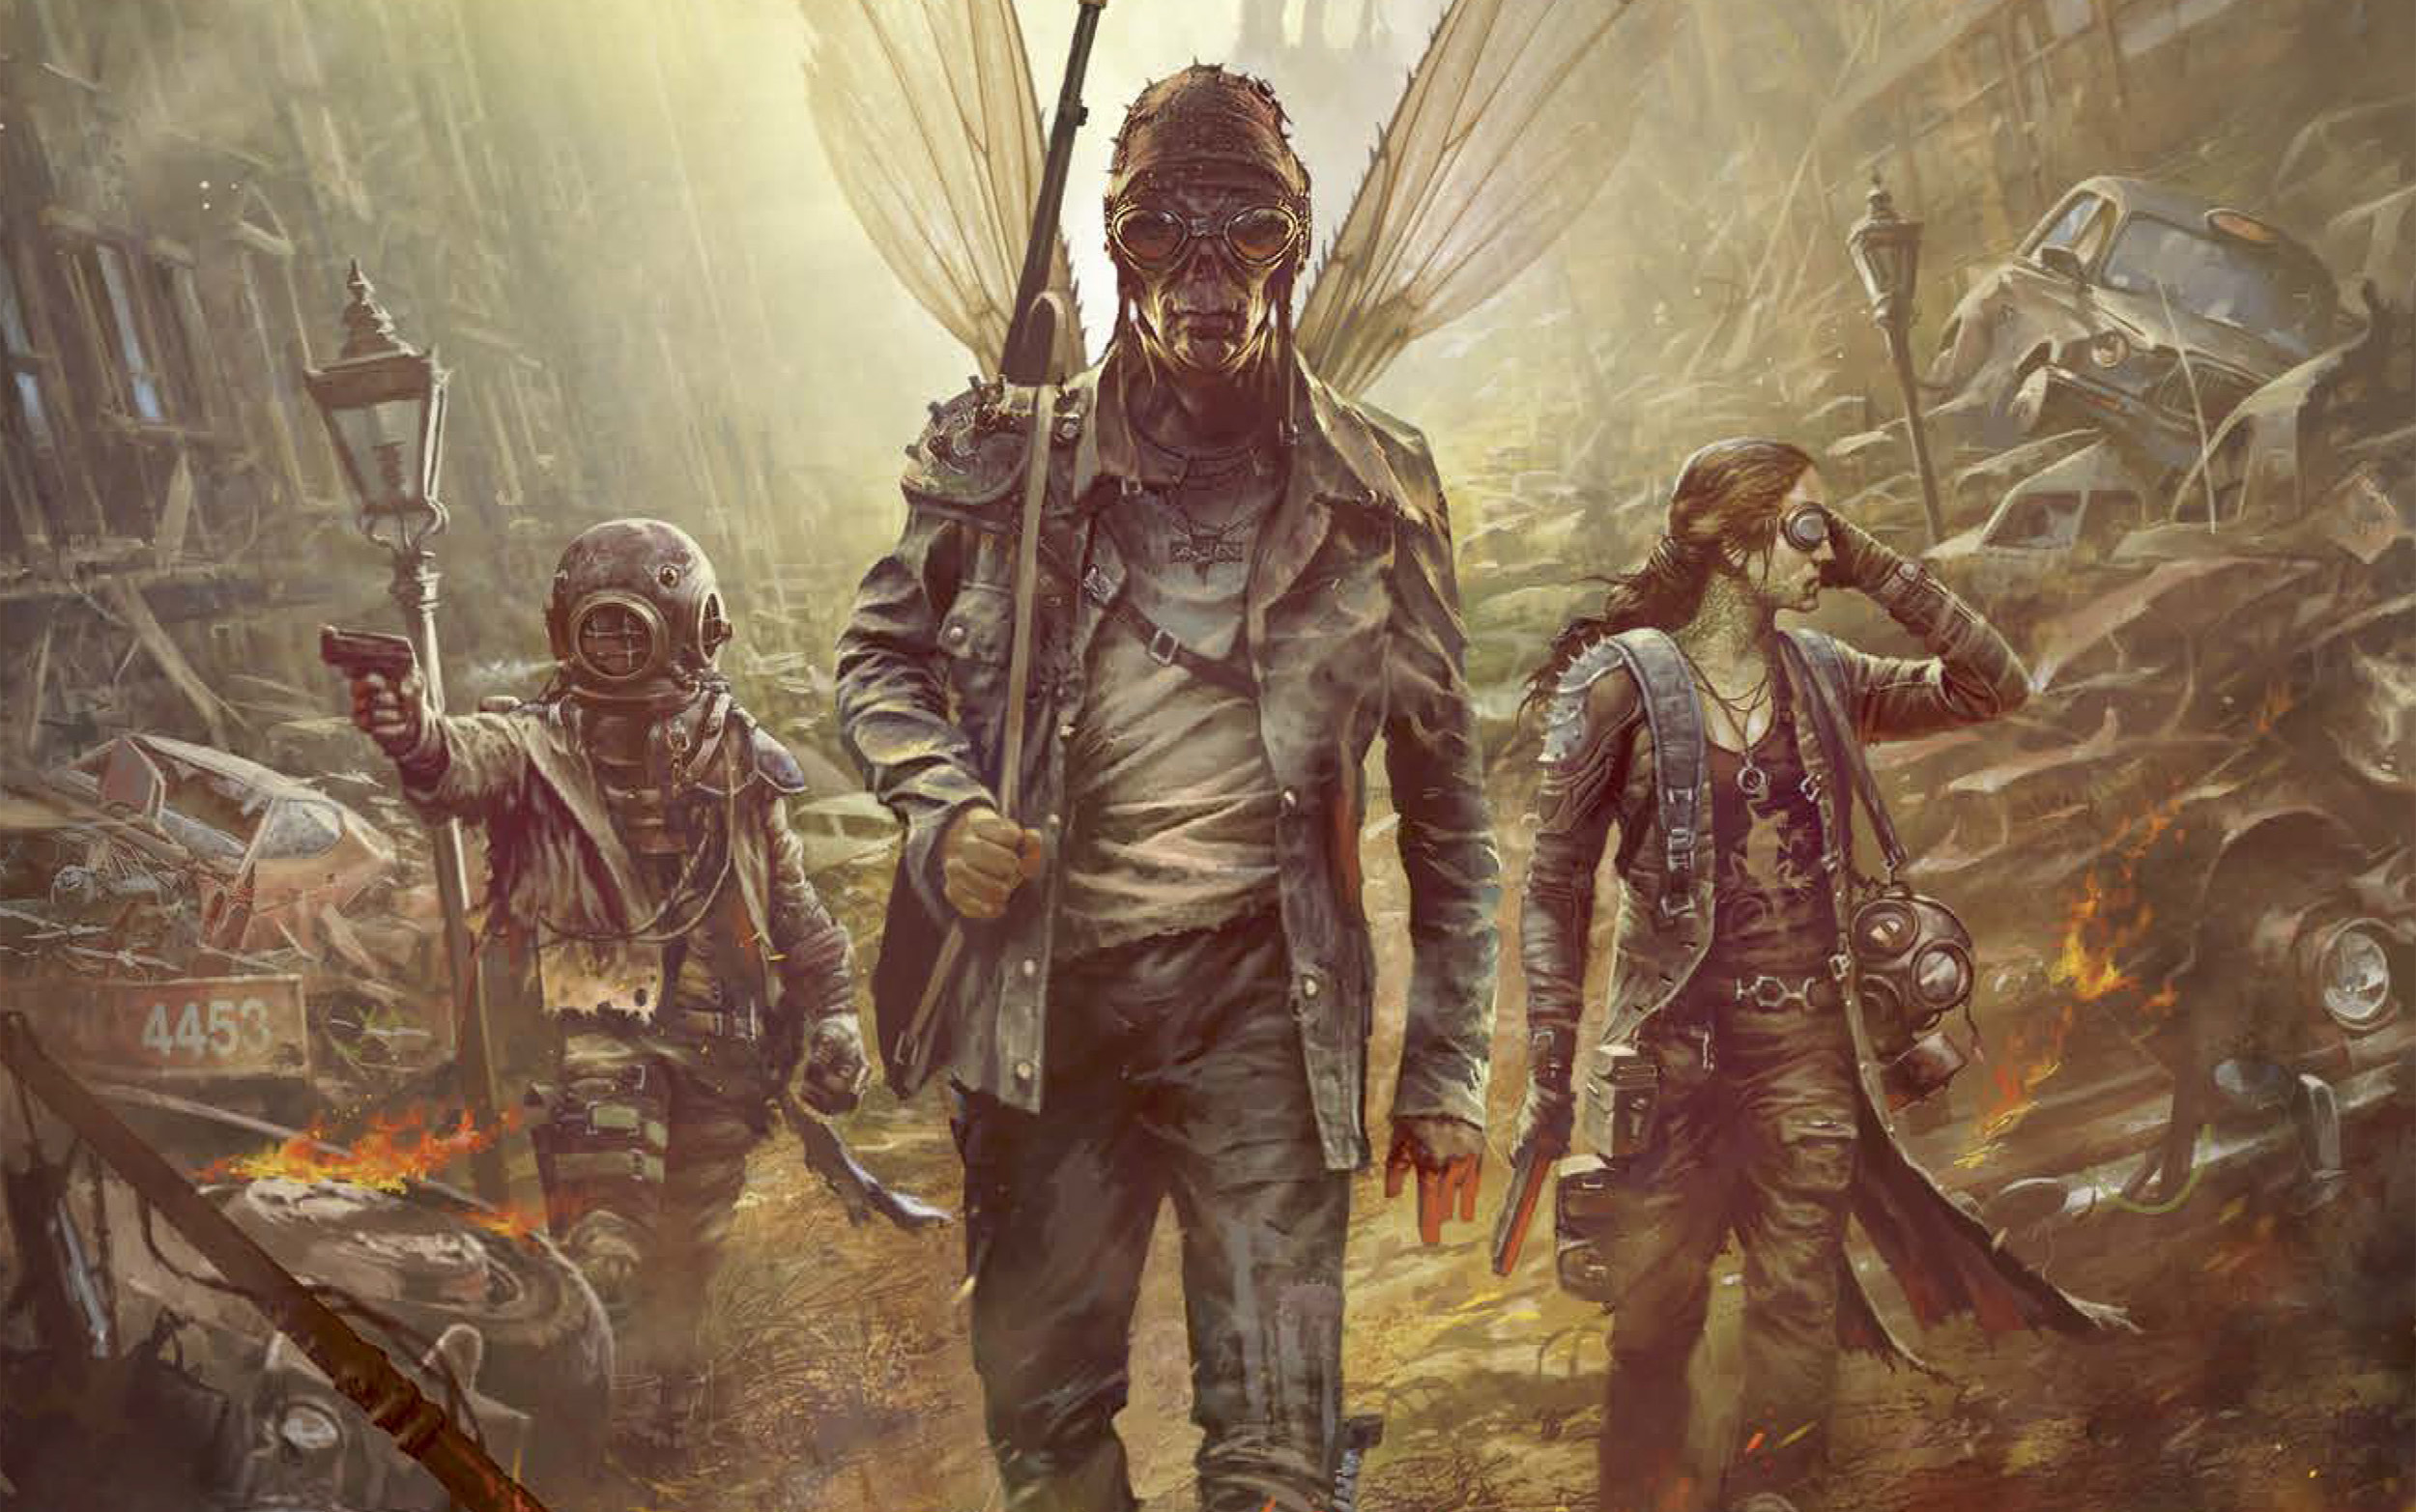 The tabletop lore behind Mutant Year Zero's gun-toting animals and psionic doomsday cultists